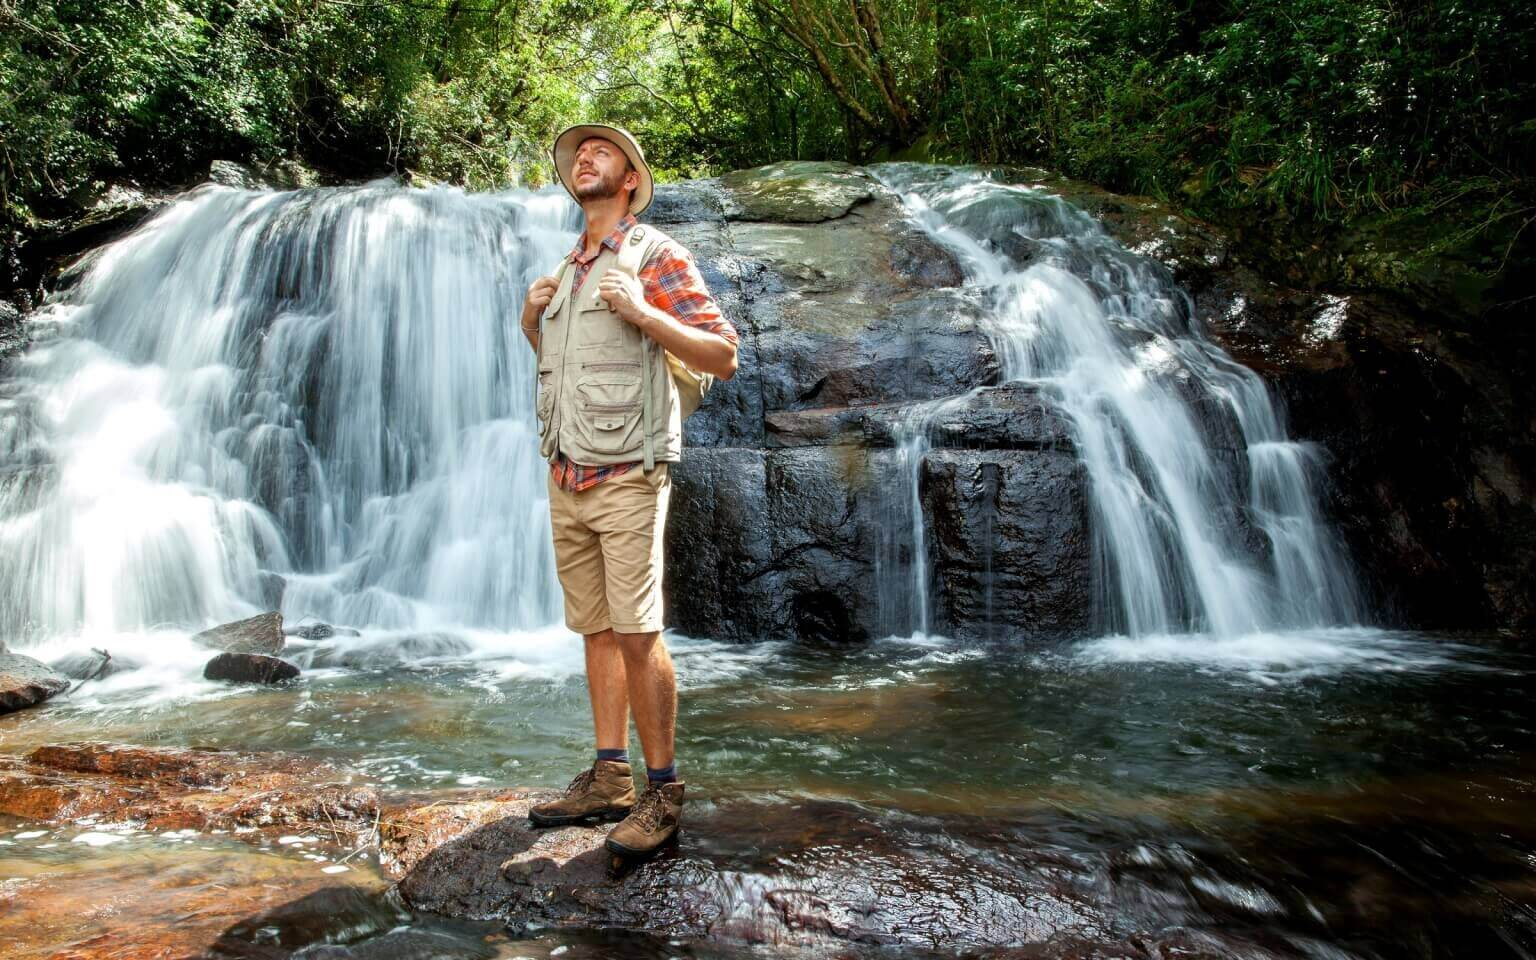 Image of Hiker standing in front of a waterfall deep in the jungle